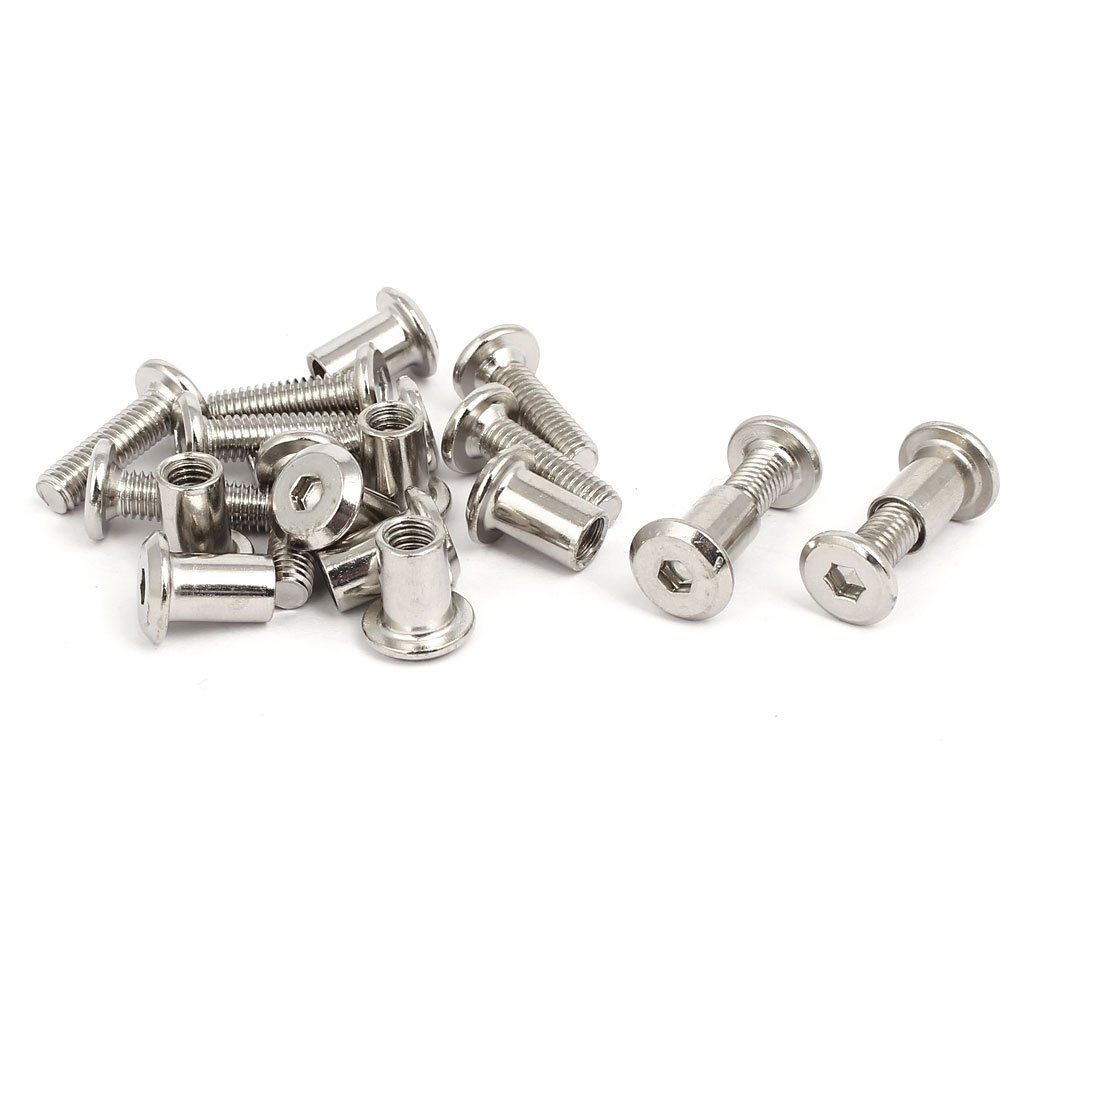 M6x50mm Male Thread Cupboard Cabinet Socket Hex Screw Post Silver Tone 10pcs